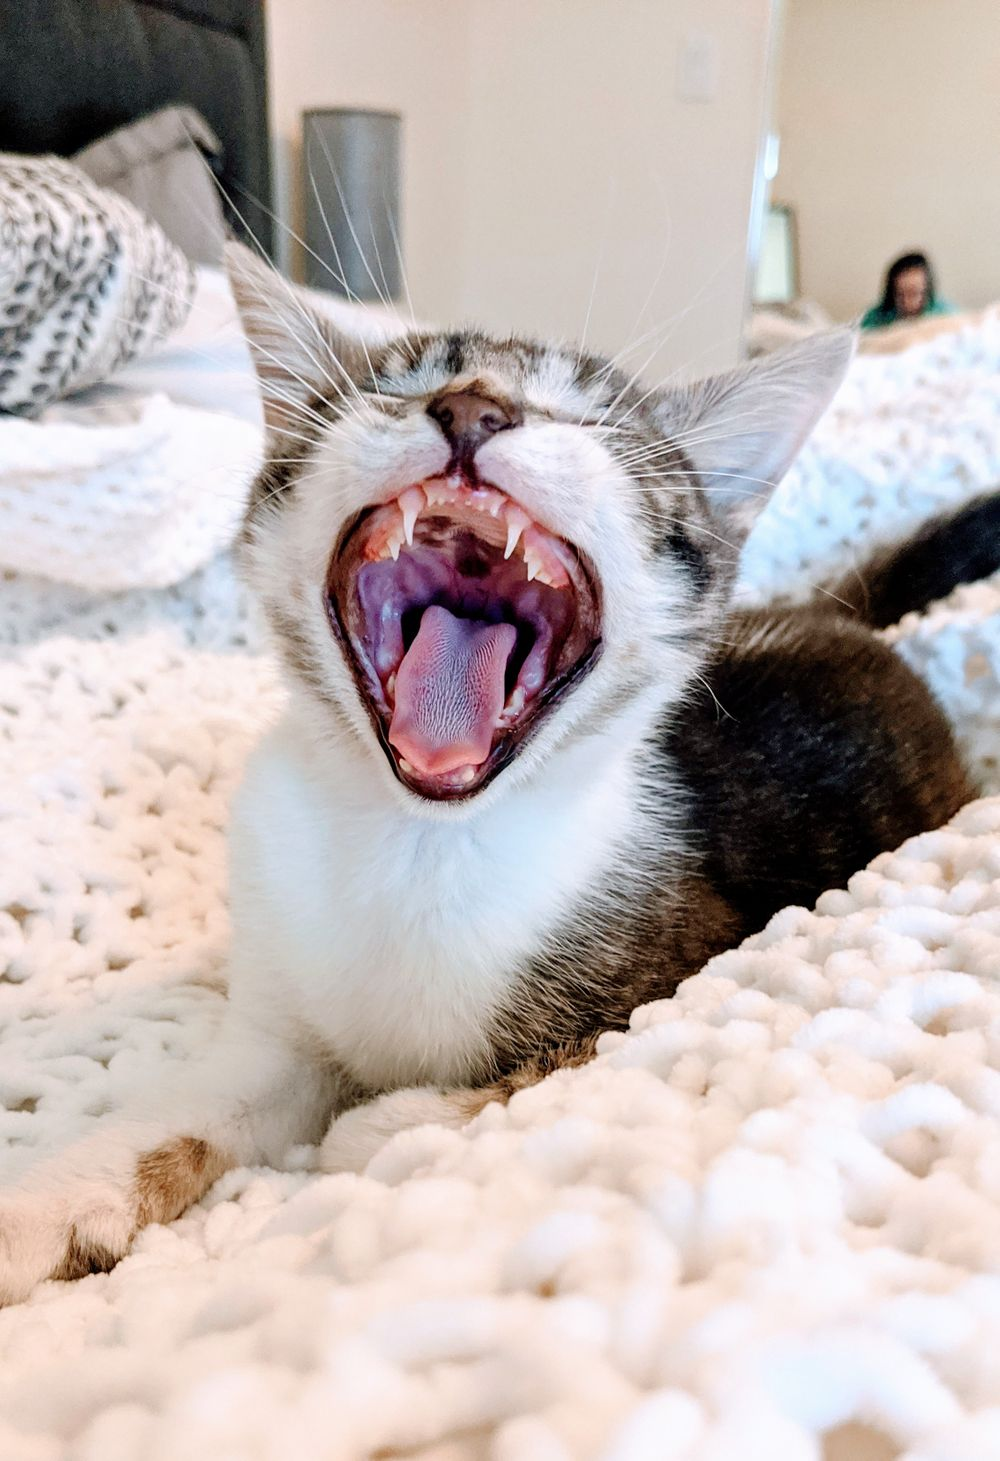 grey and white tabby kitten yawning